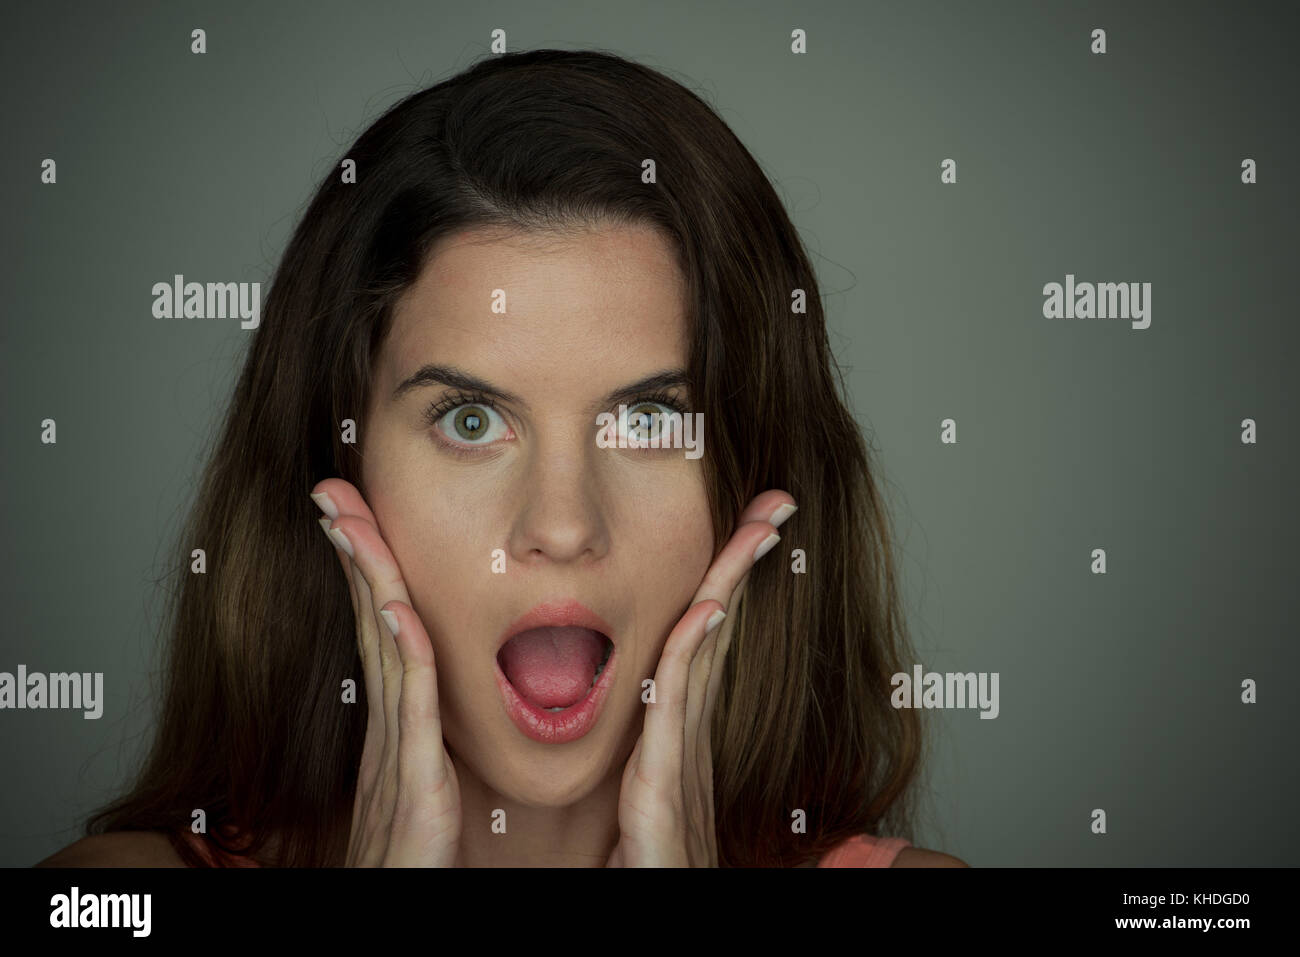 Young woman with surprised expression on face and hands on cheeks, portrait Stock Photo